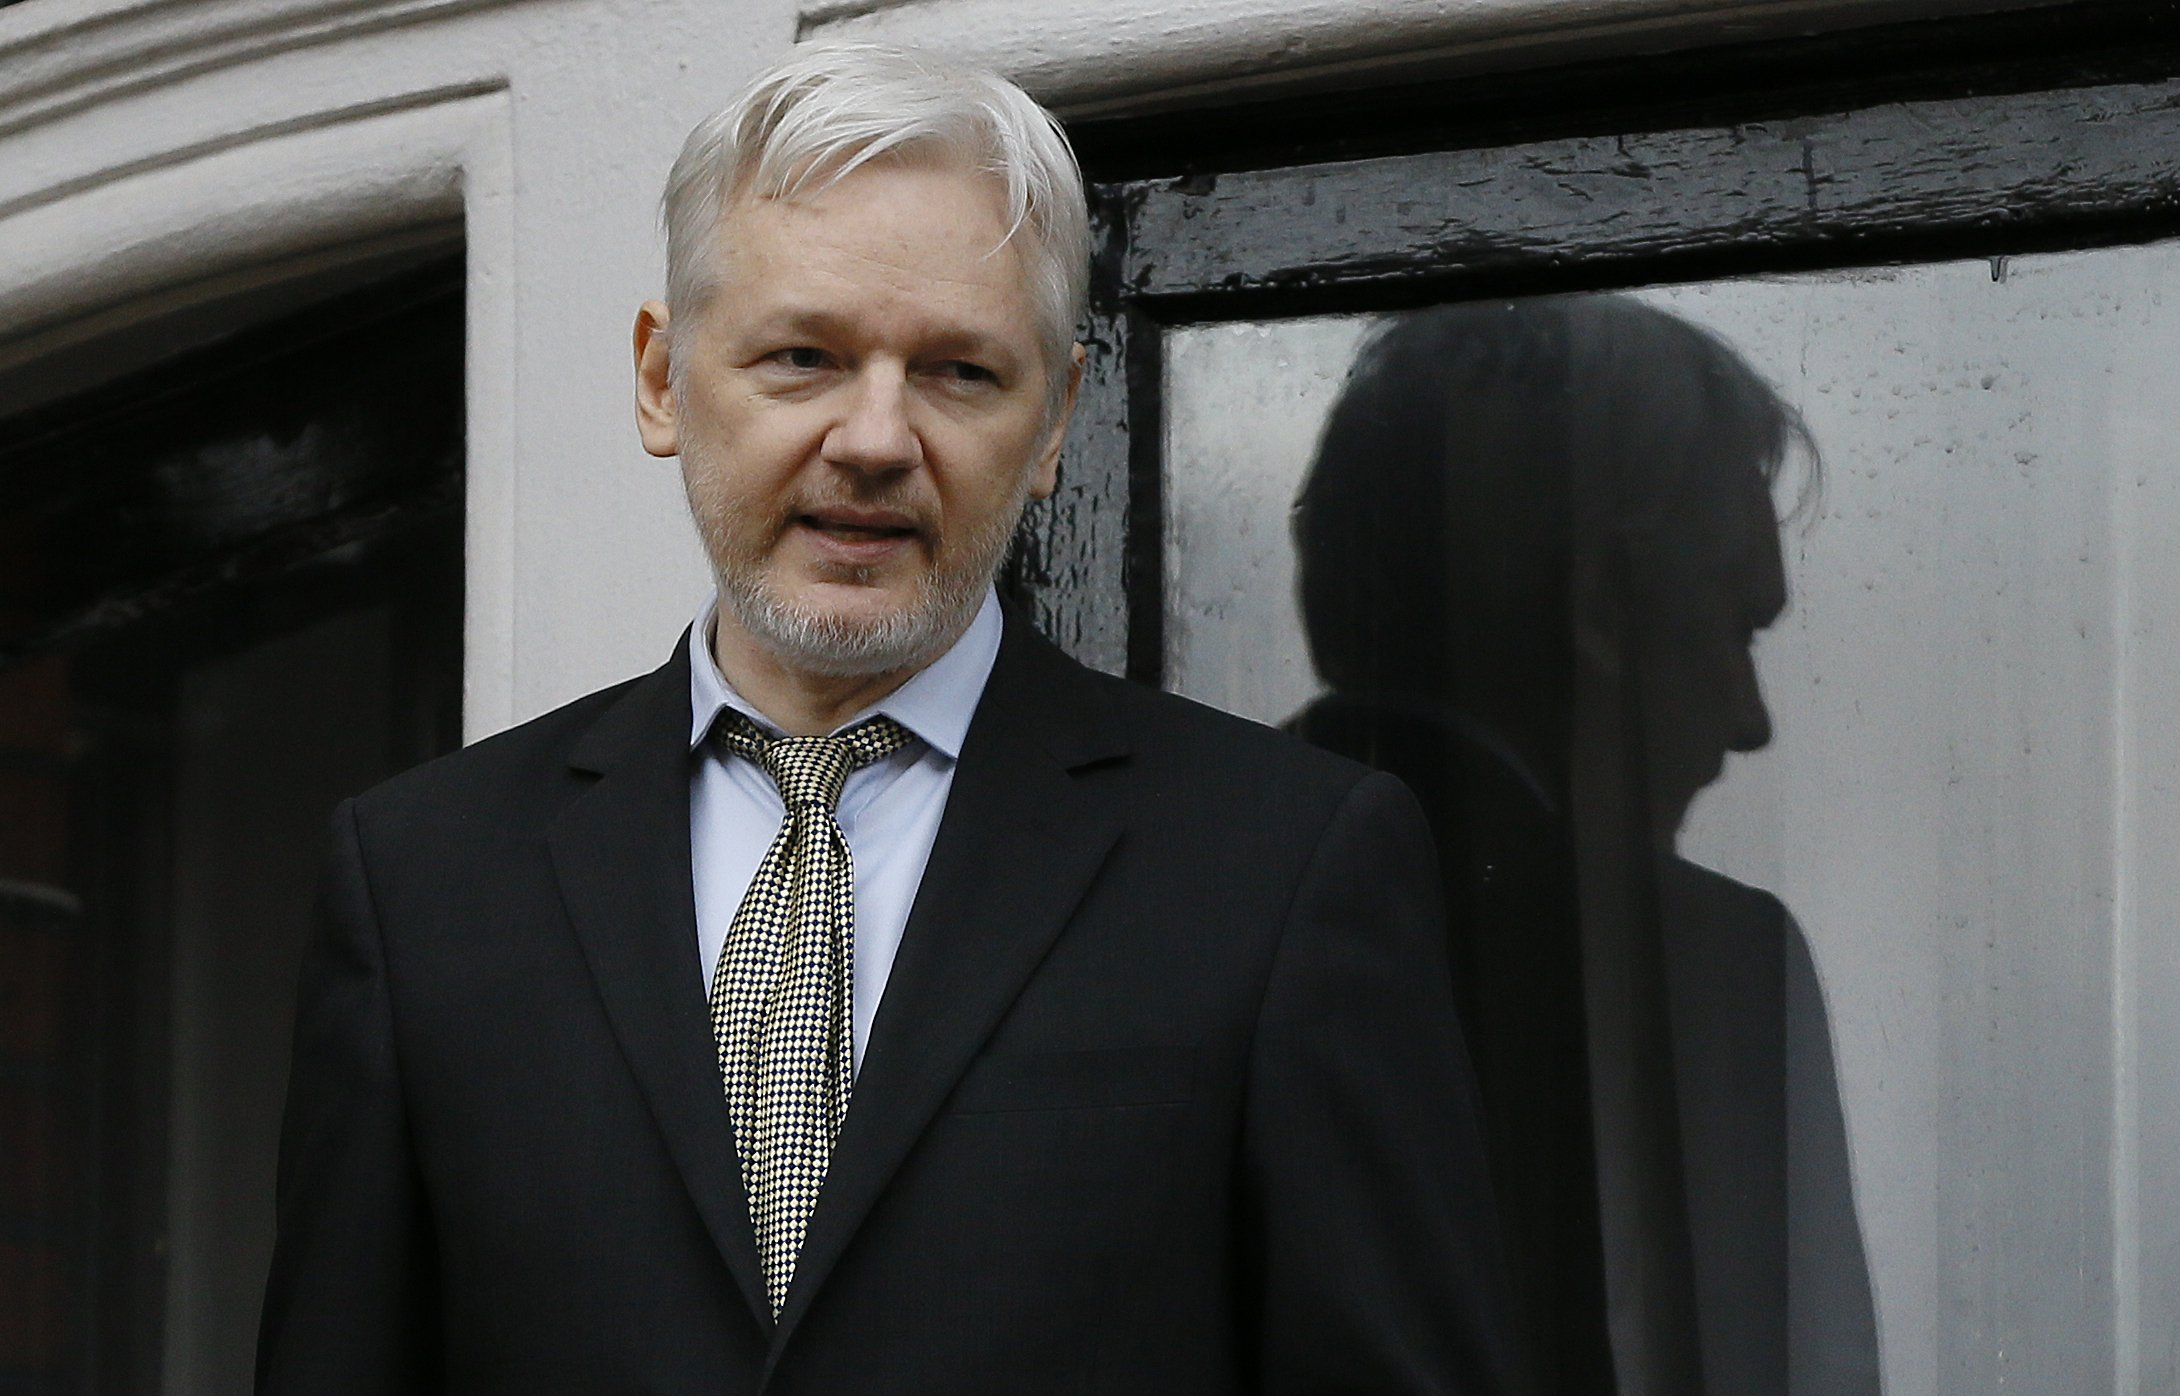 Assange questioning ends in London; no decision yet